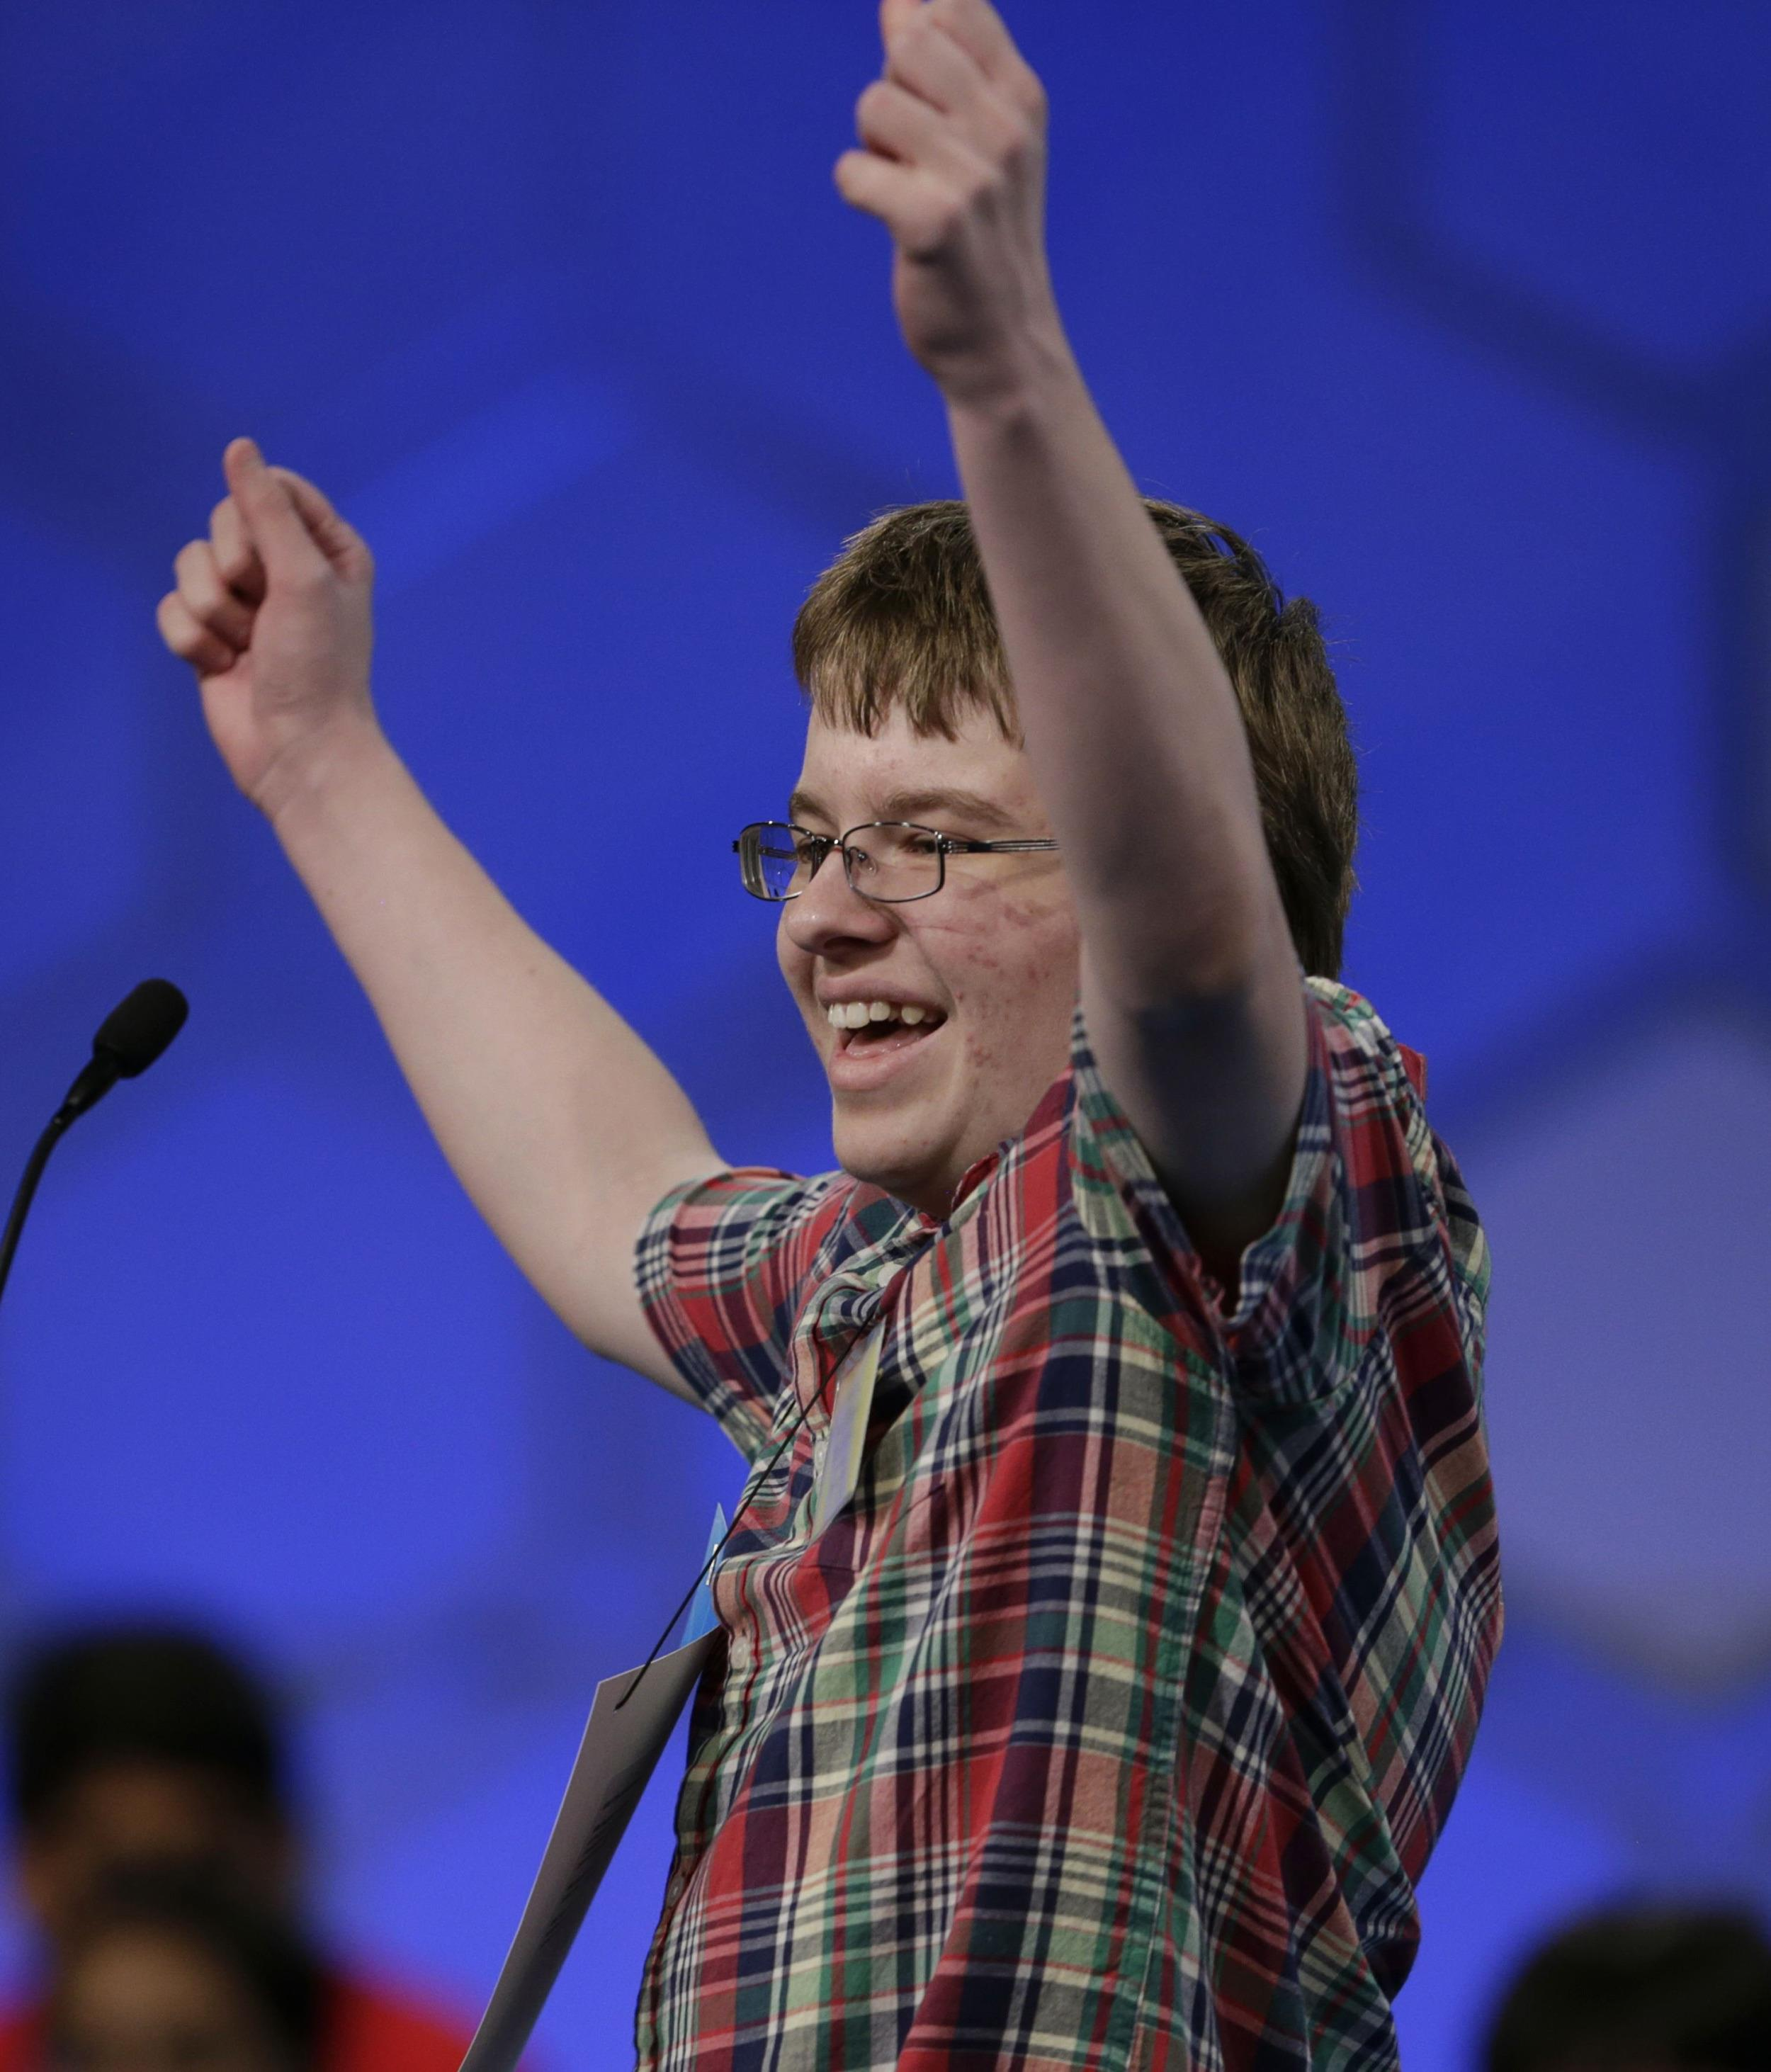 Image: Jacob Williamson celebrates the correct spelling of his word during the semifinals of the 87th annual Scripps National Spelling Bee at National Harbor, Maryland